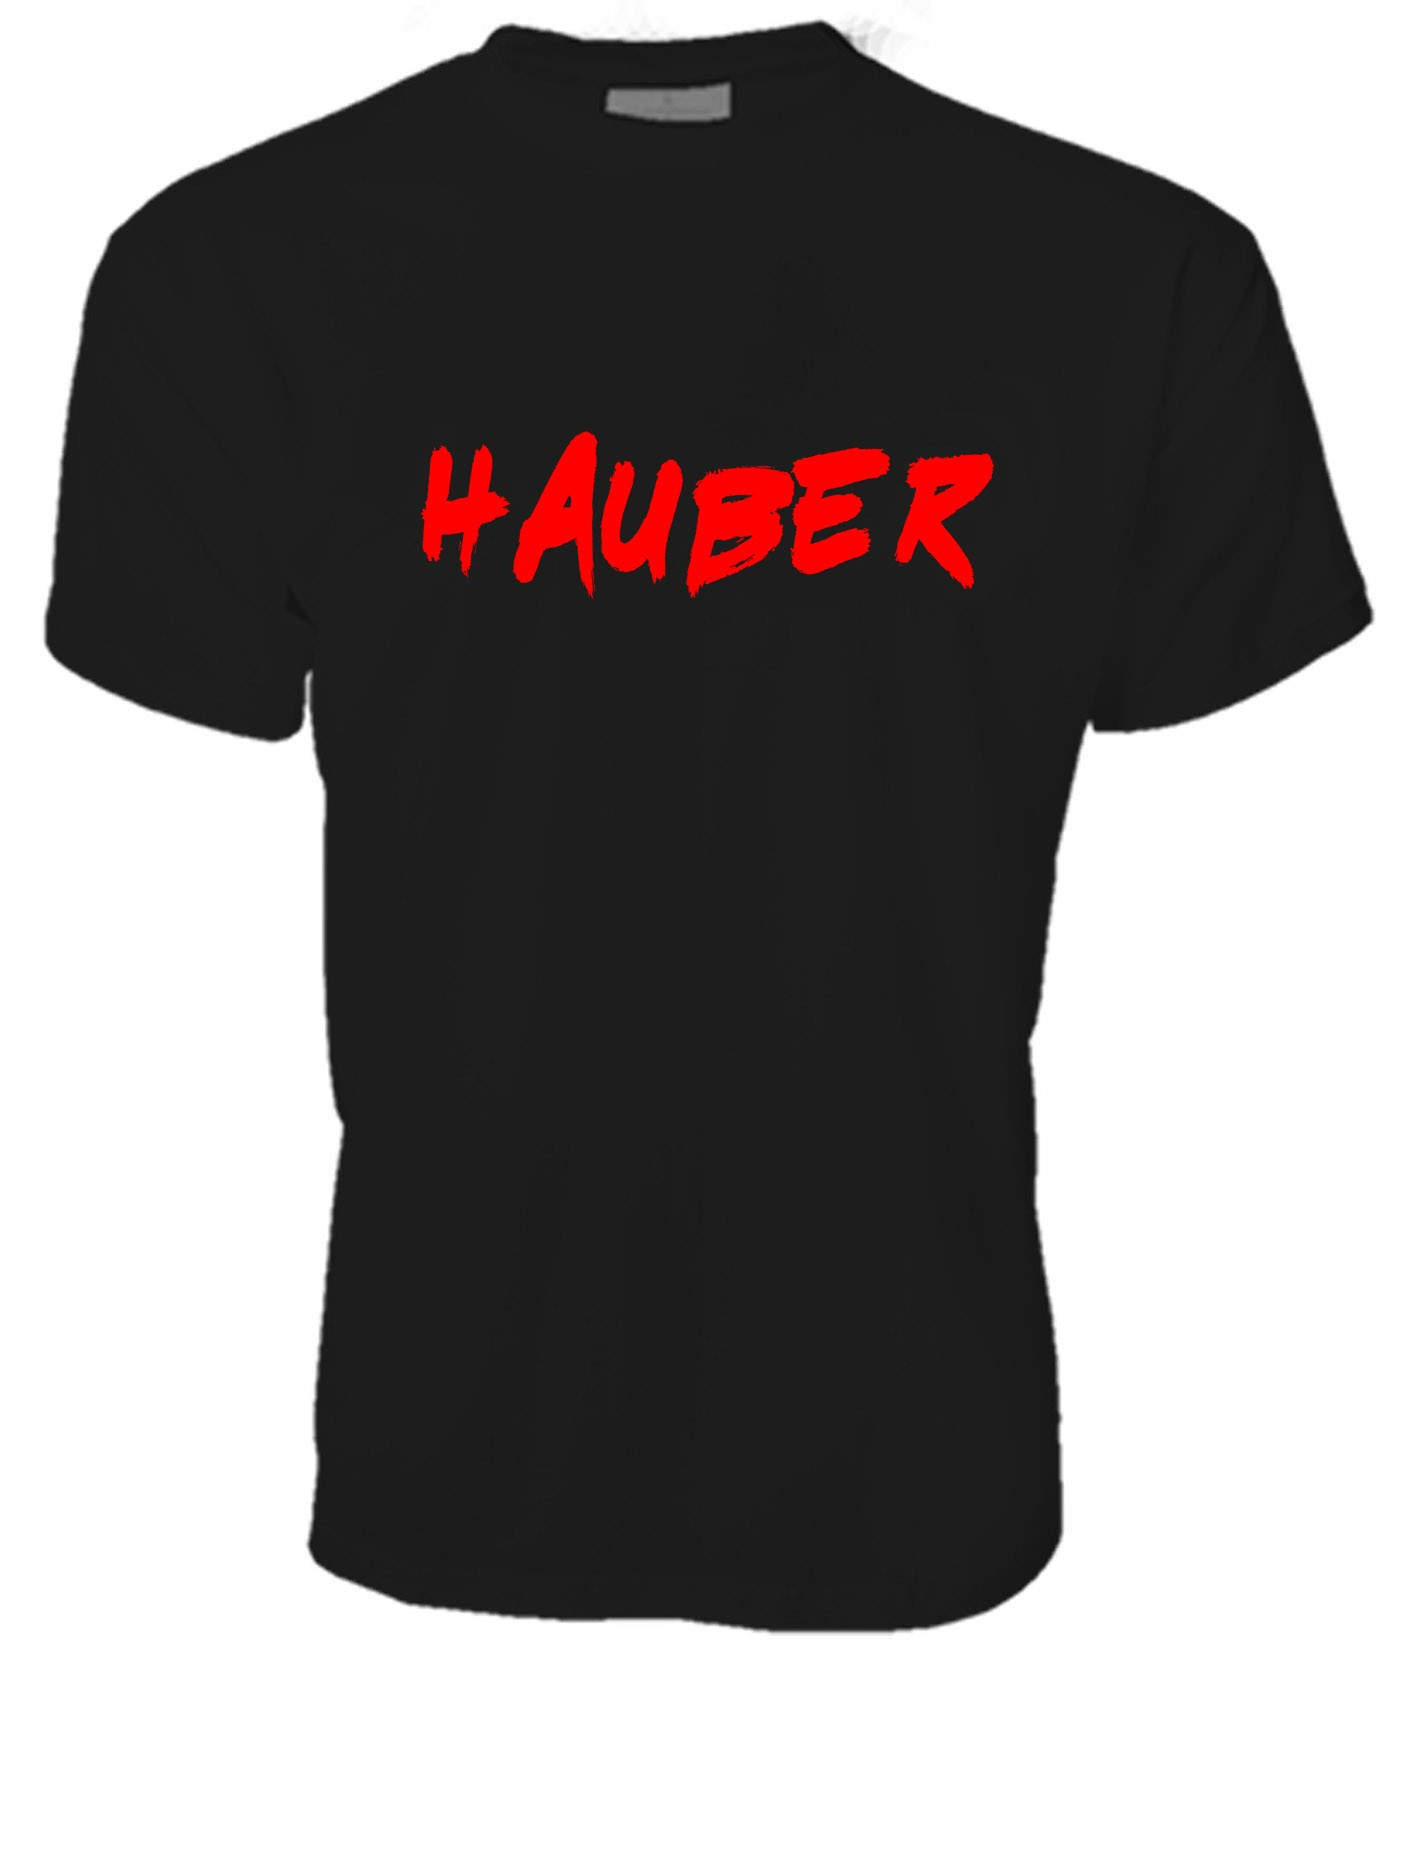 MEN PREMIUM CREW NECK T-SHIRT HAUBER